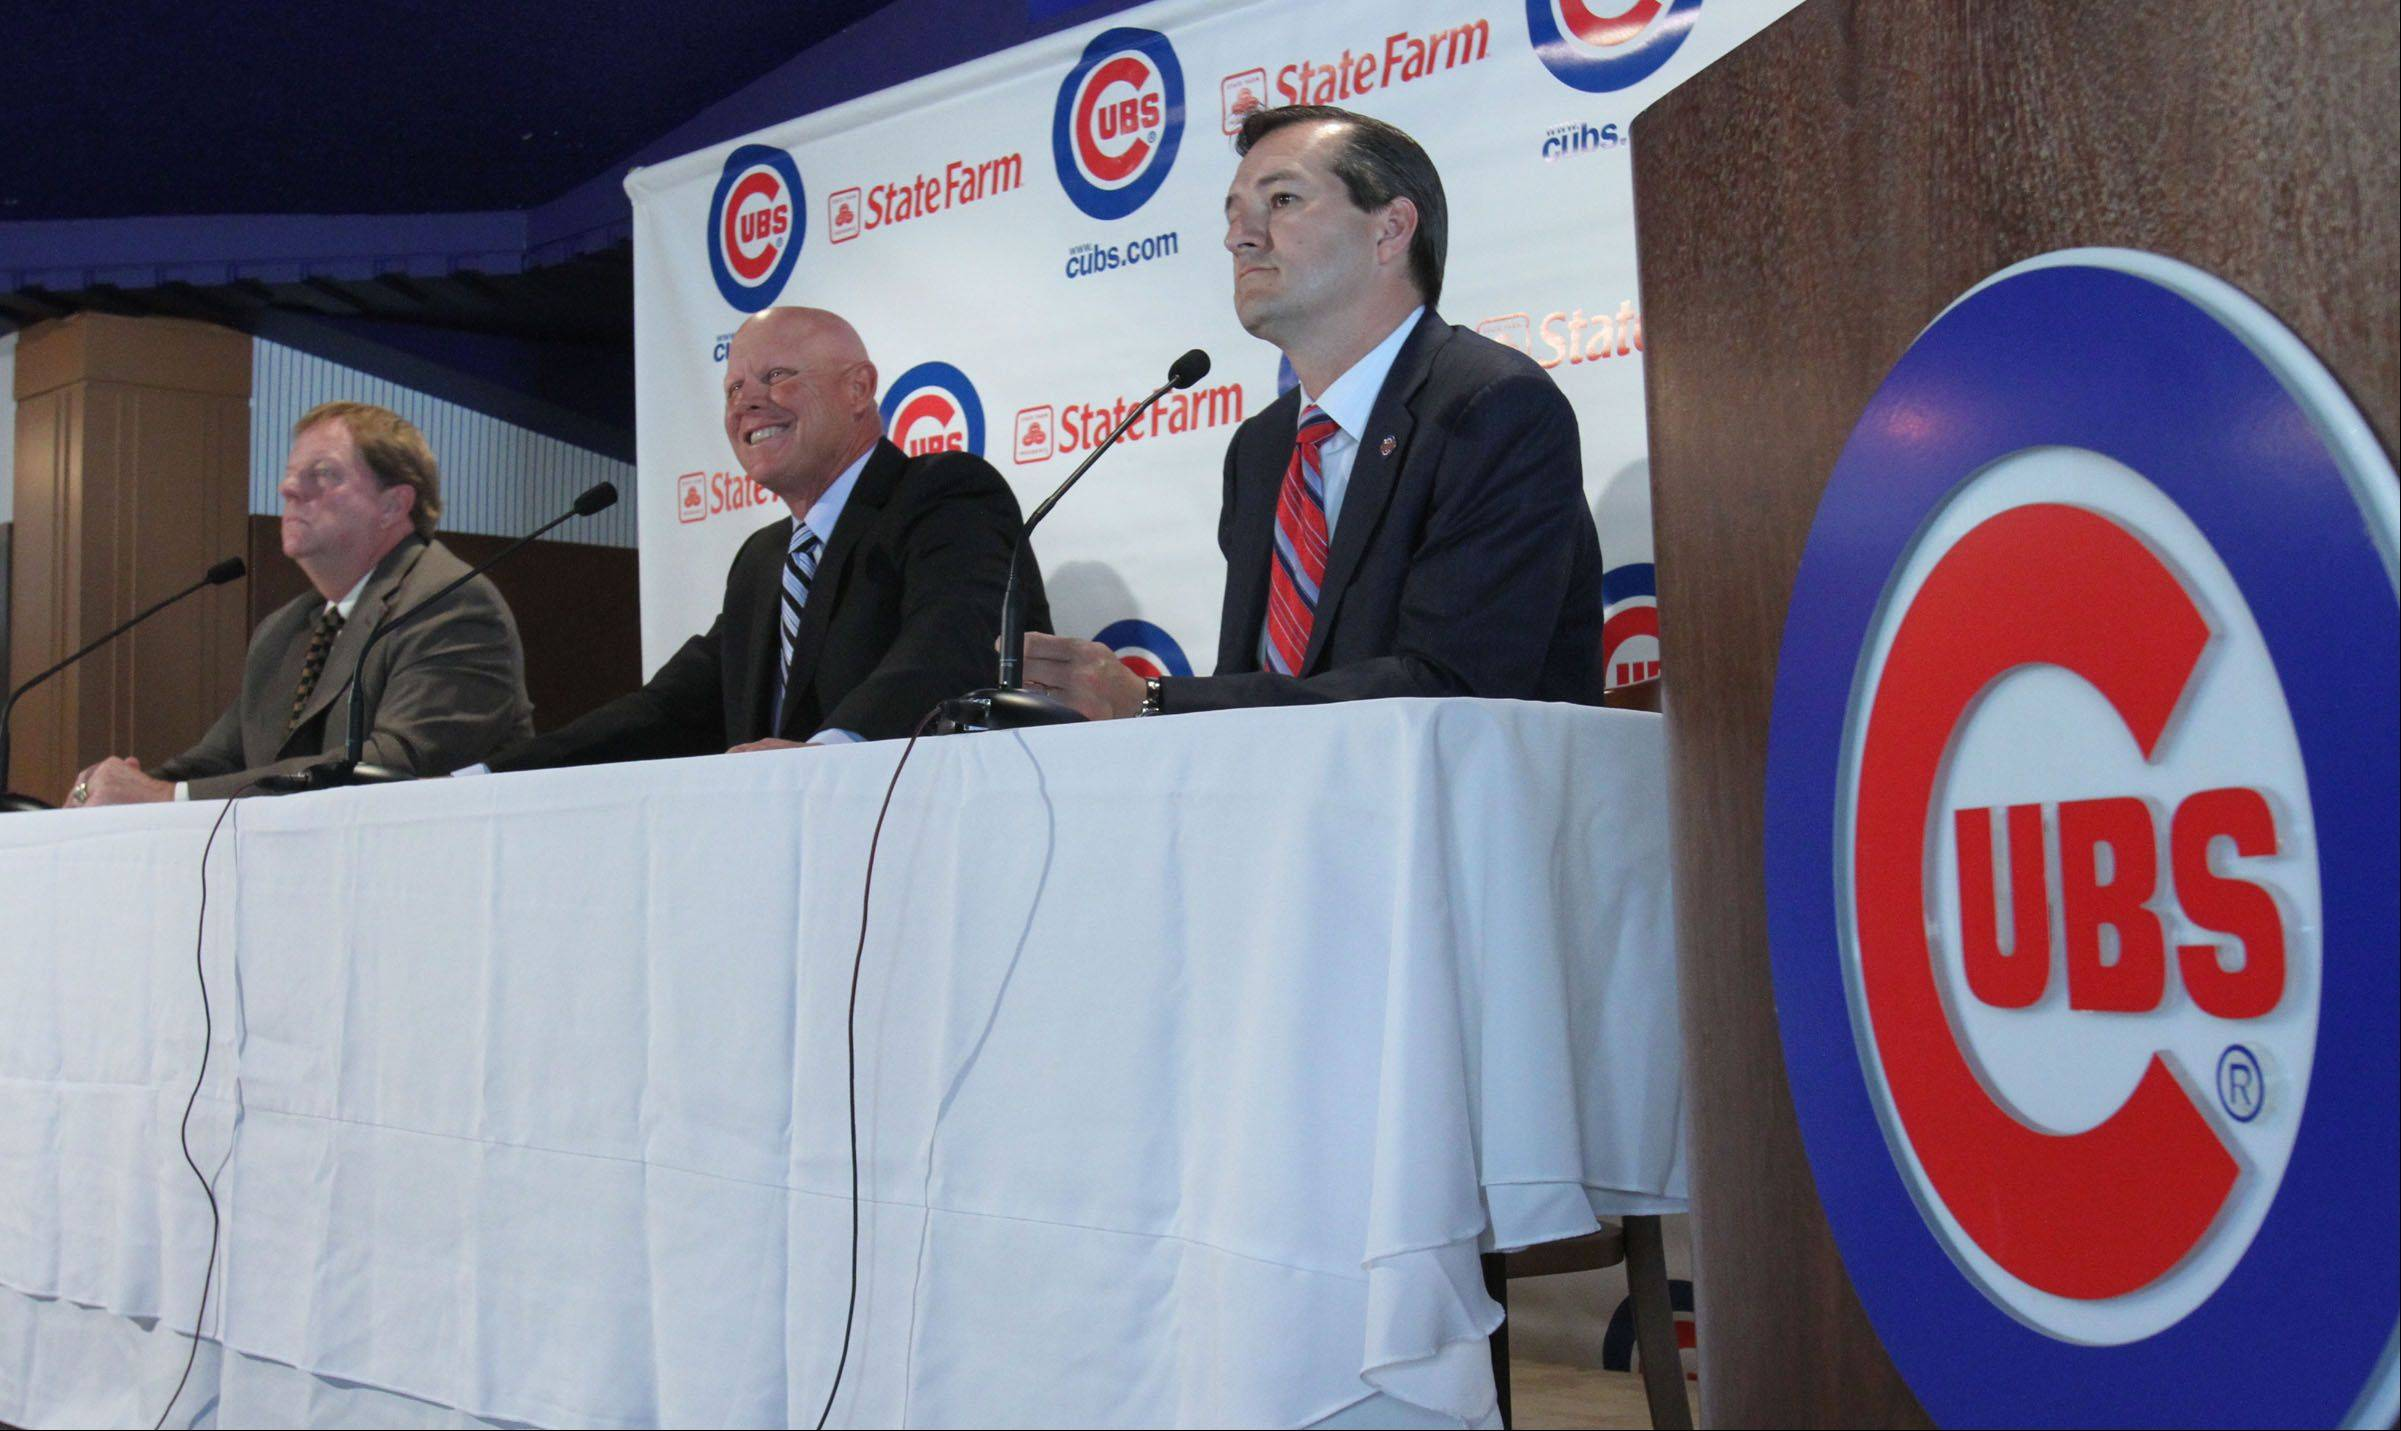 Mike Quade is named the Chicago Cubs manager at A press conference with Chicago Cubs owner Tom Ricketts and Cubs General Manager Jim Hendry at Wrigley Field in Chicago on Tuesday, October 19, 2010.